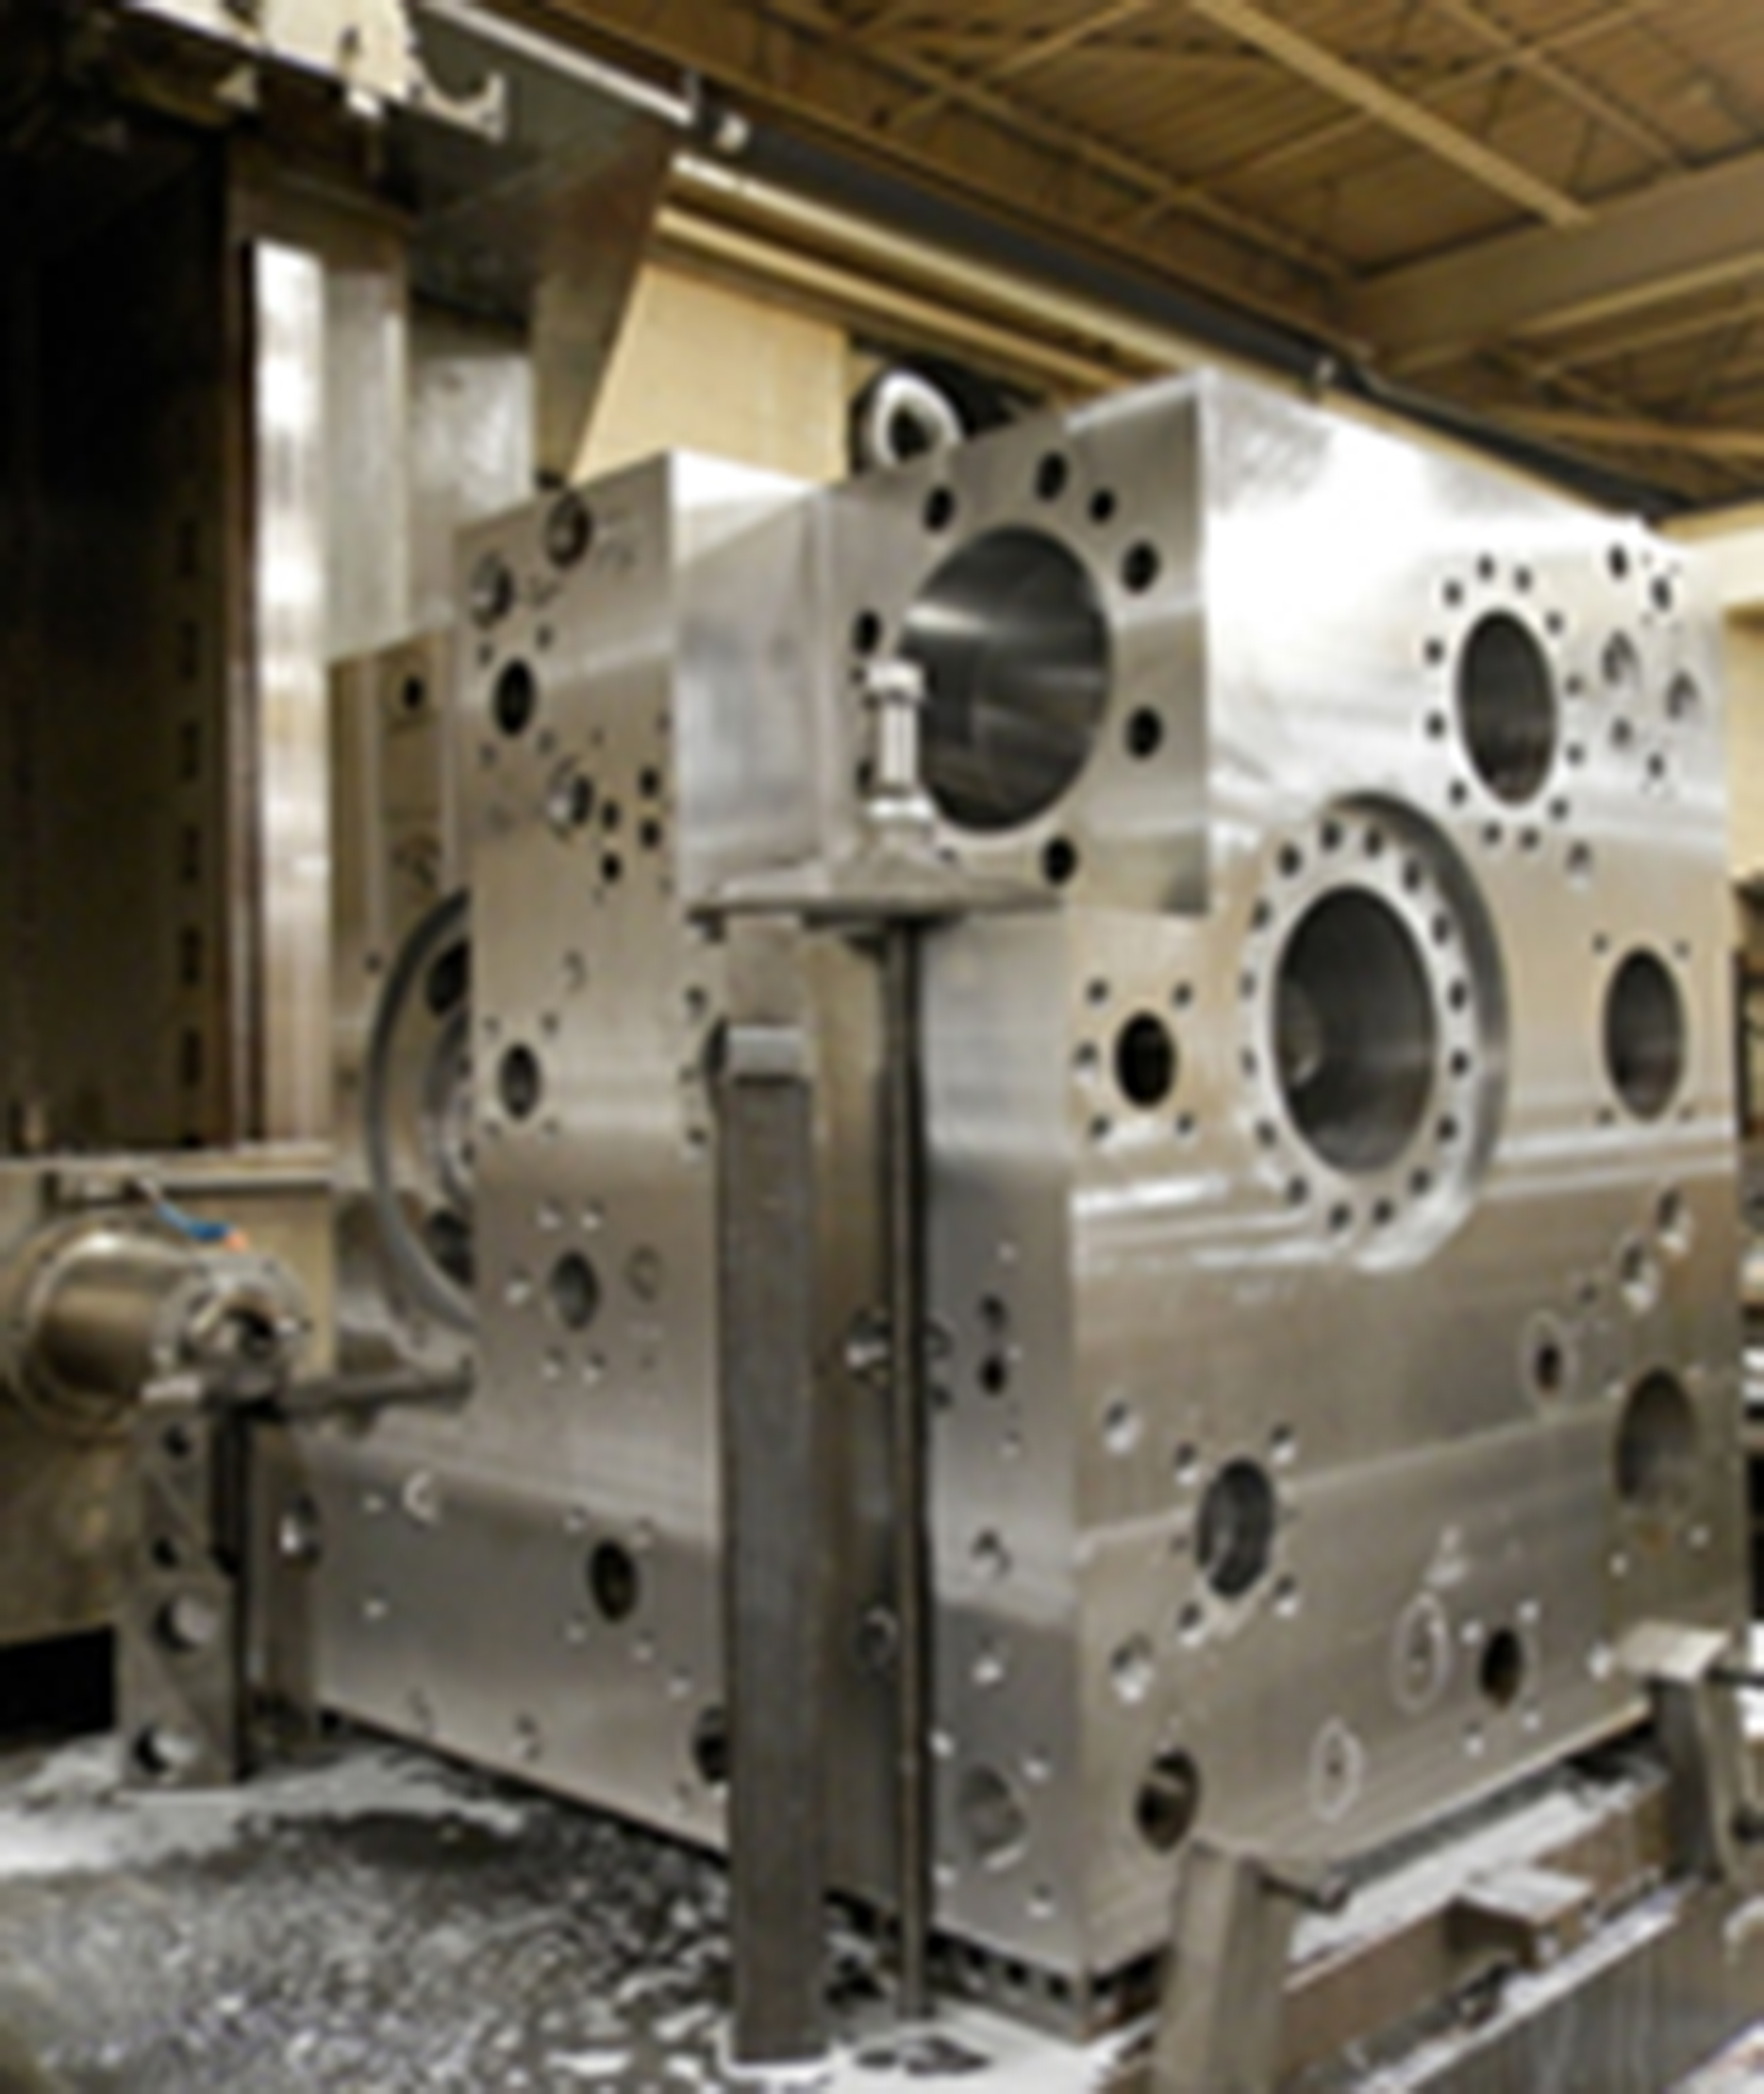 Hydraulic Manifold Manufacturing & Design Services